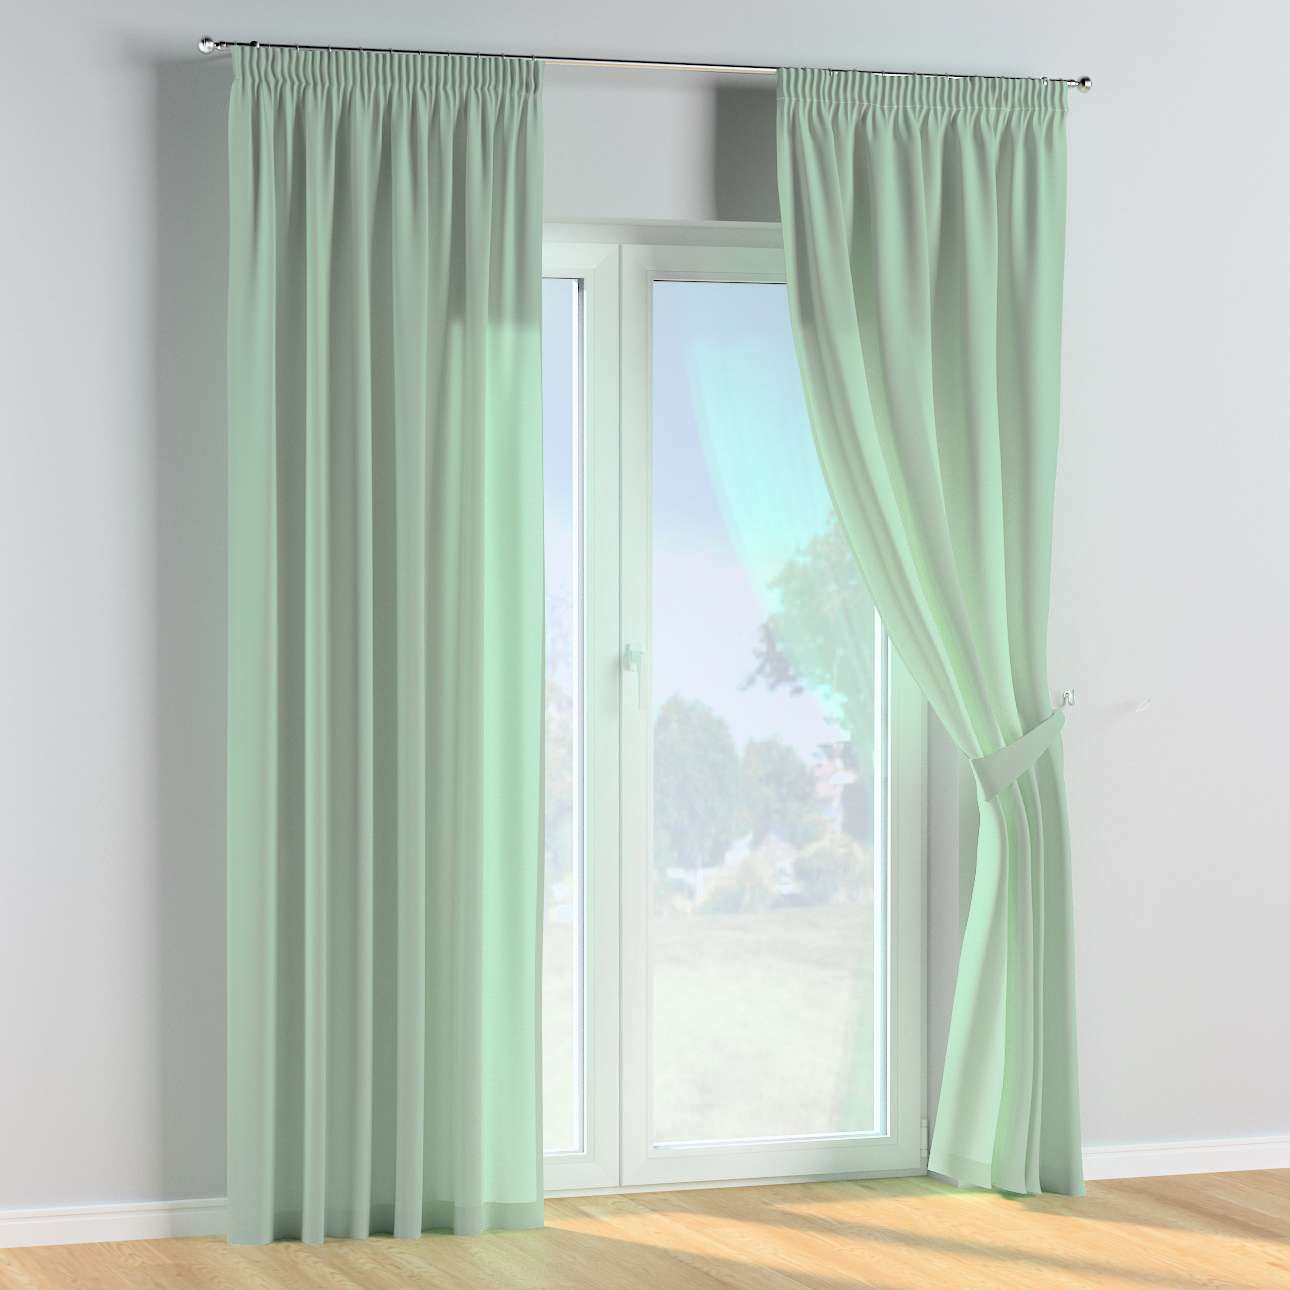 Pencil pleat curtains in collection Happiness, fabric: 133-61